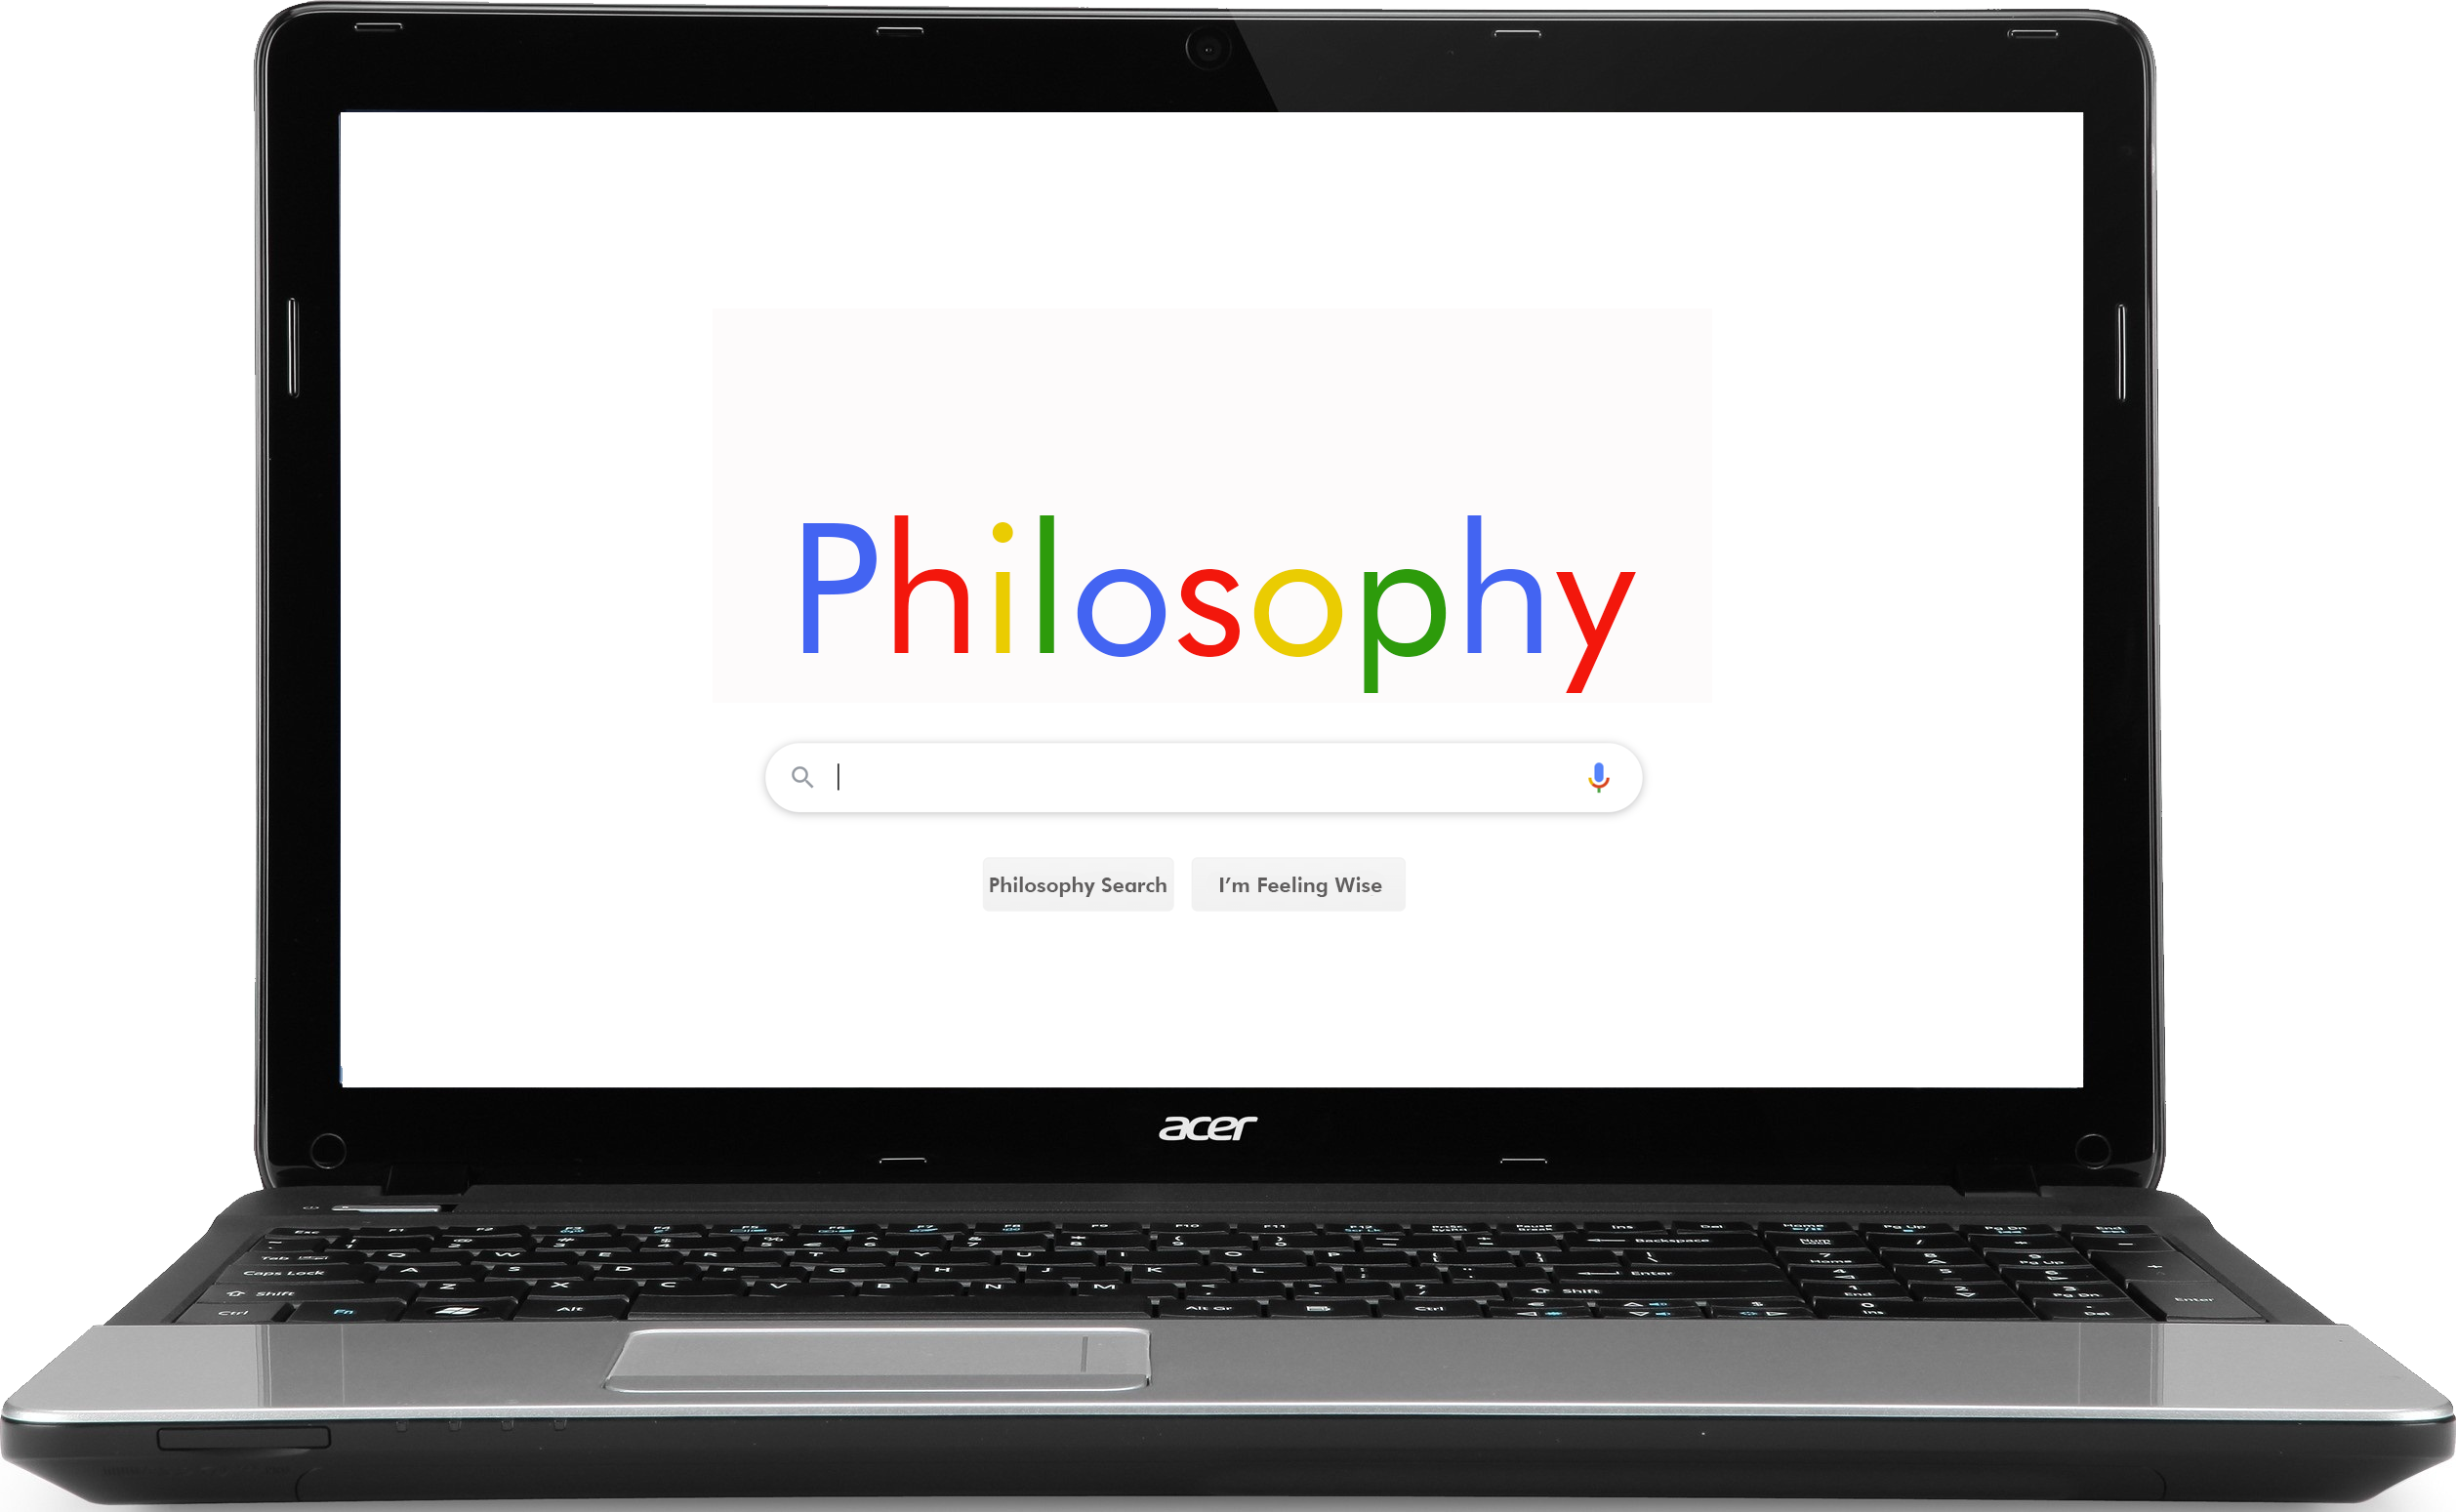 Advocating for Tech Firms to Hire Philosophers